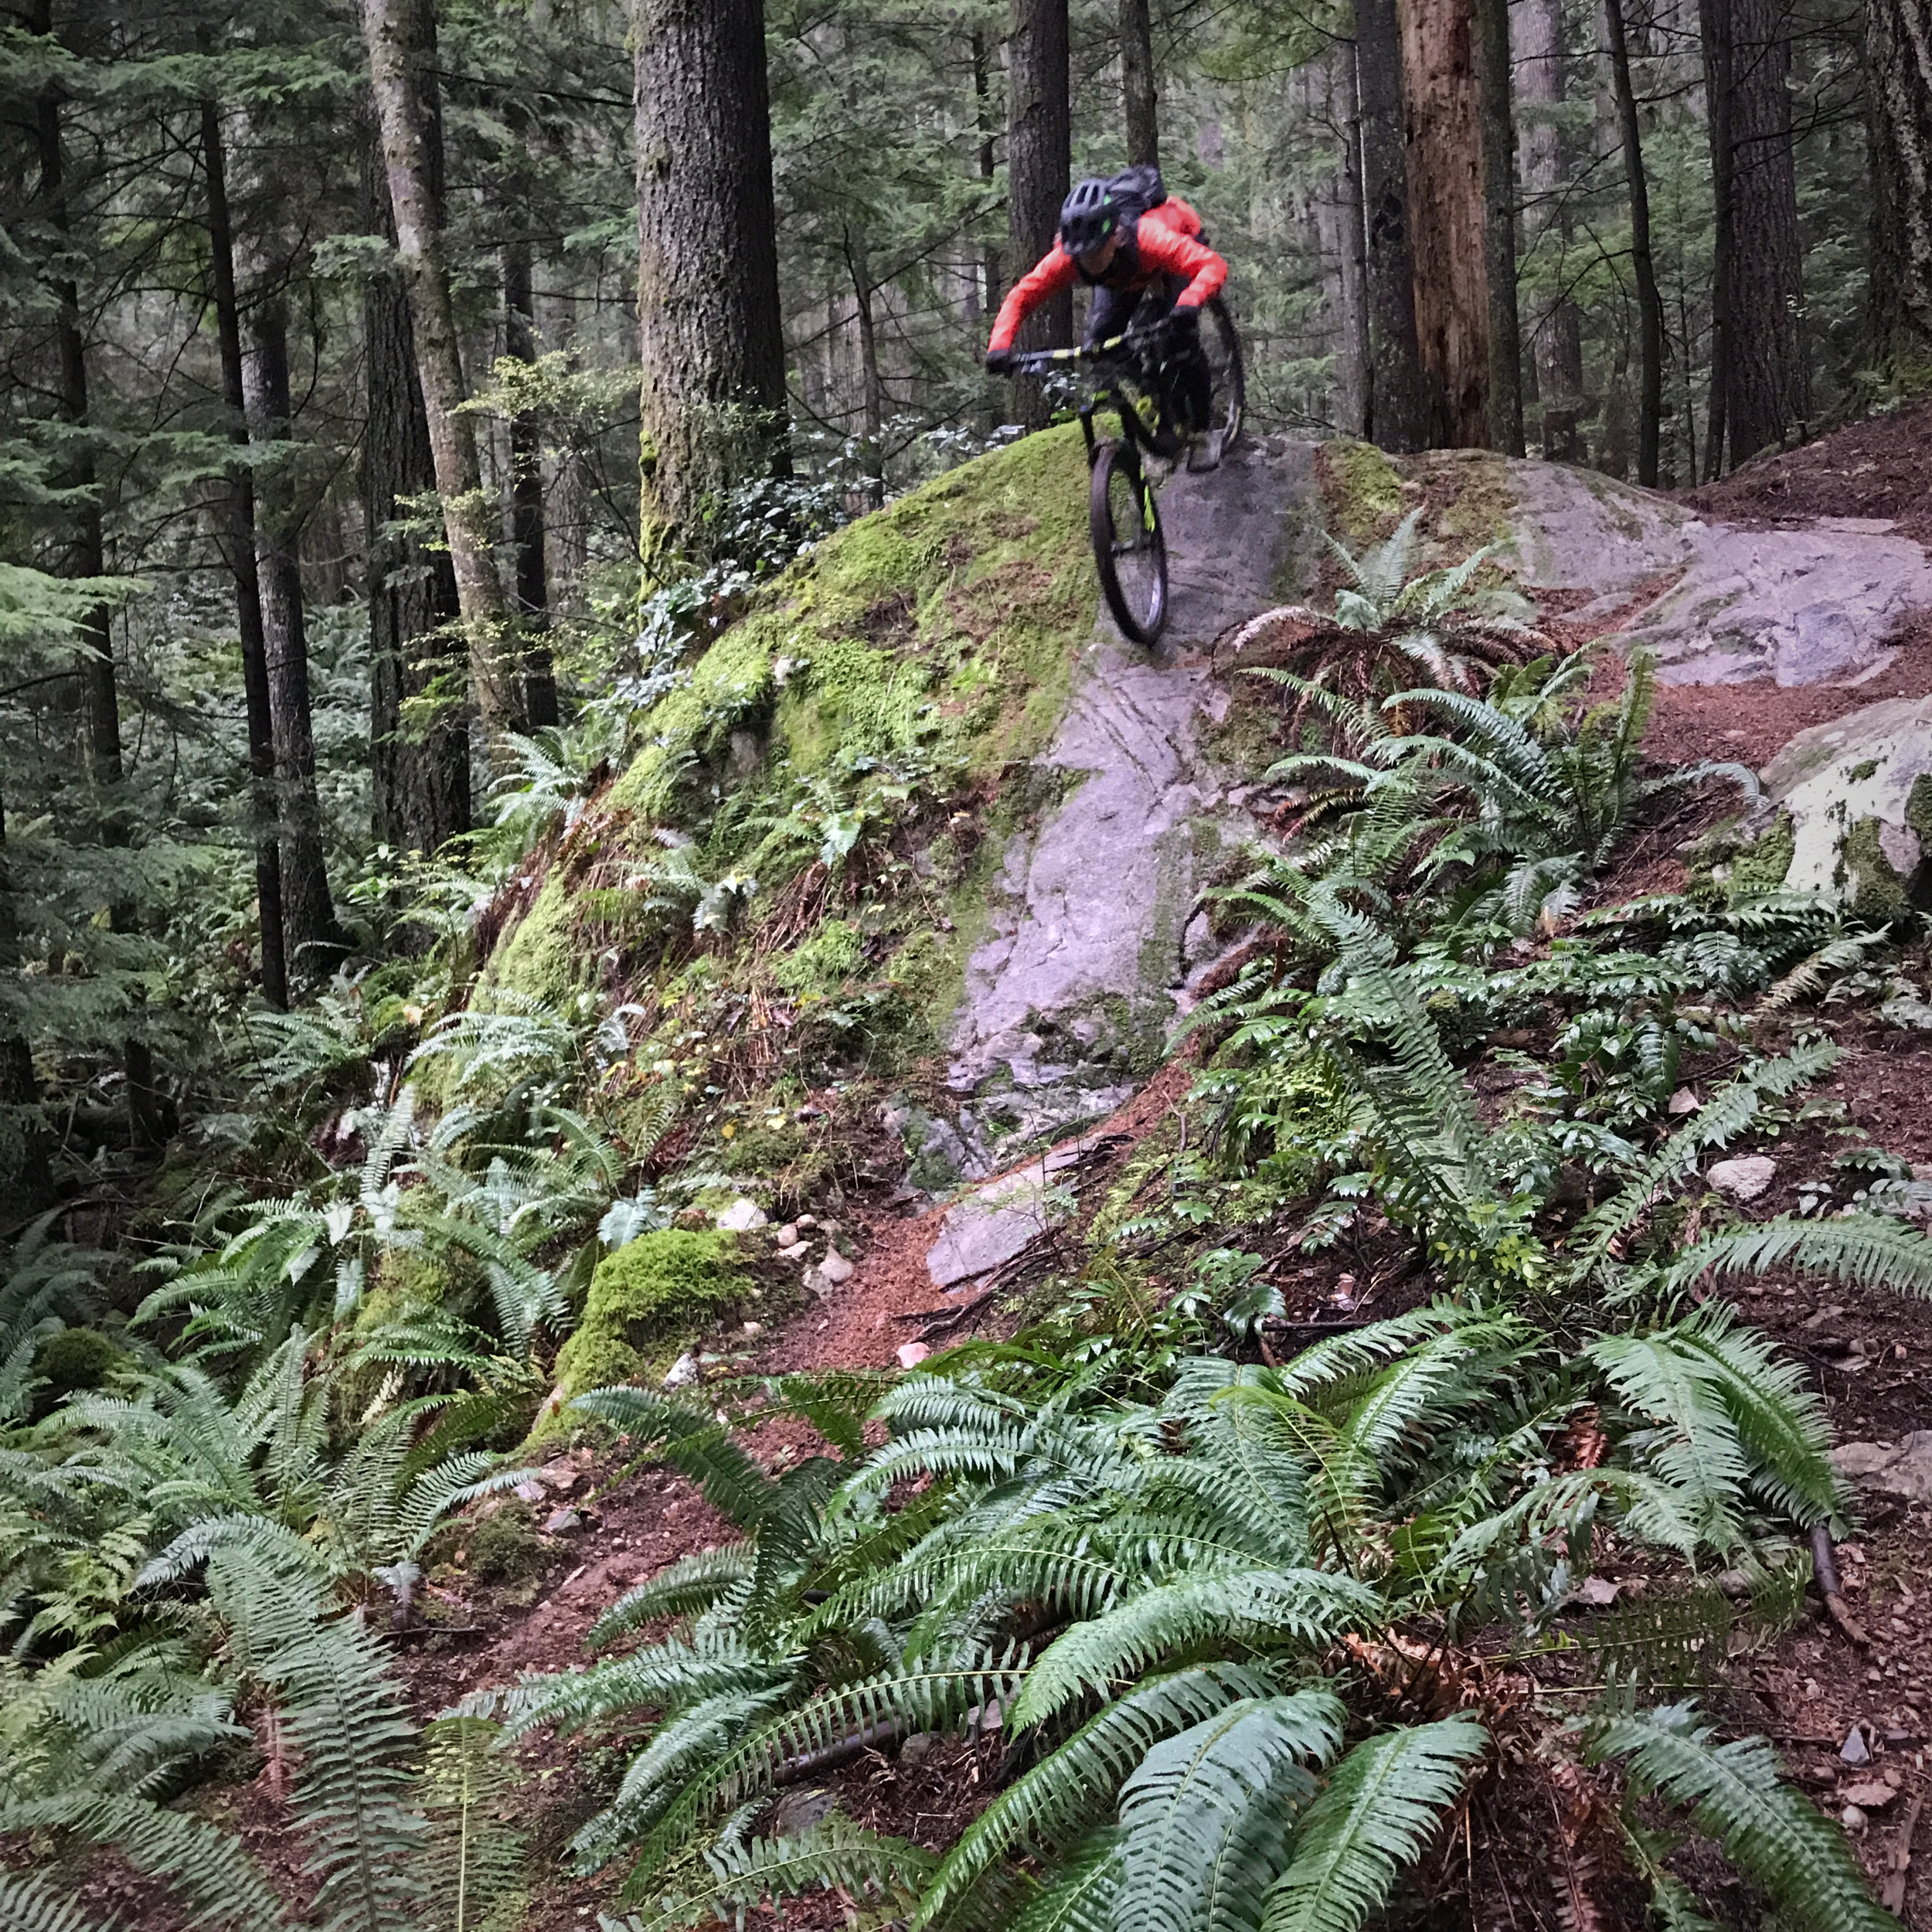 - Never ride bikes with a trail builder unless you mind stopping, as they always seem to find something to work on mid-ride.